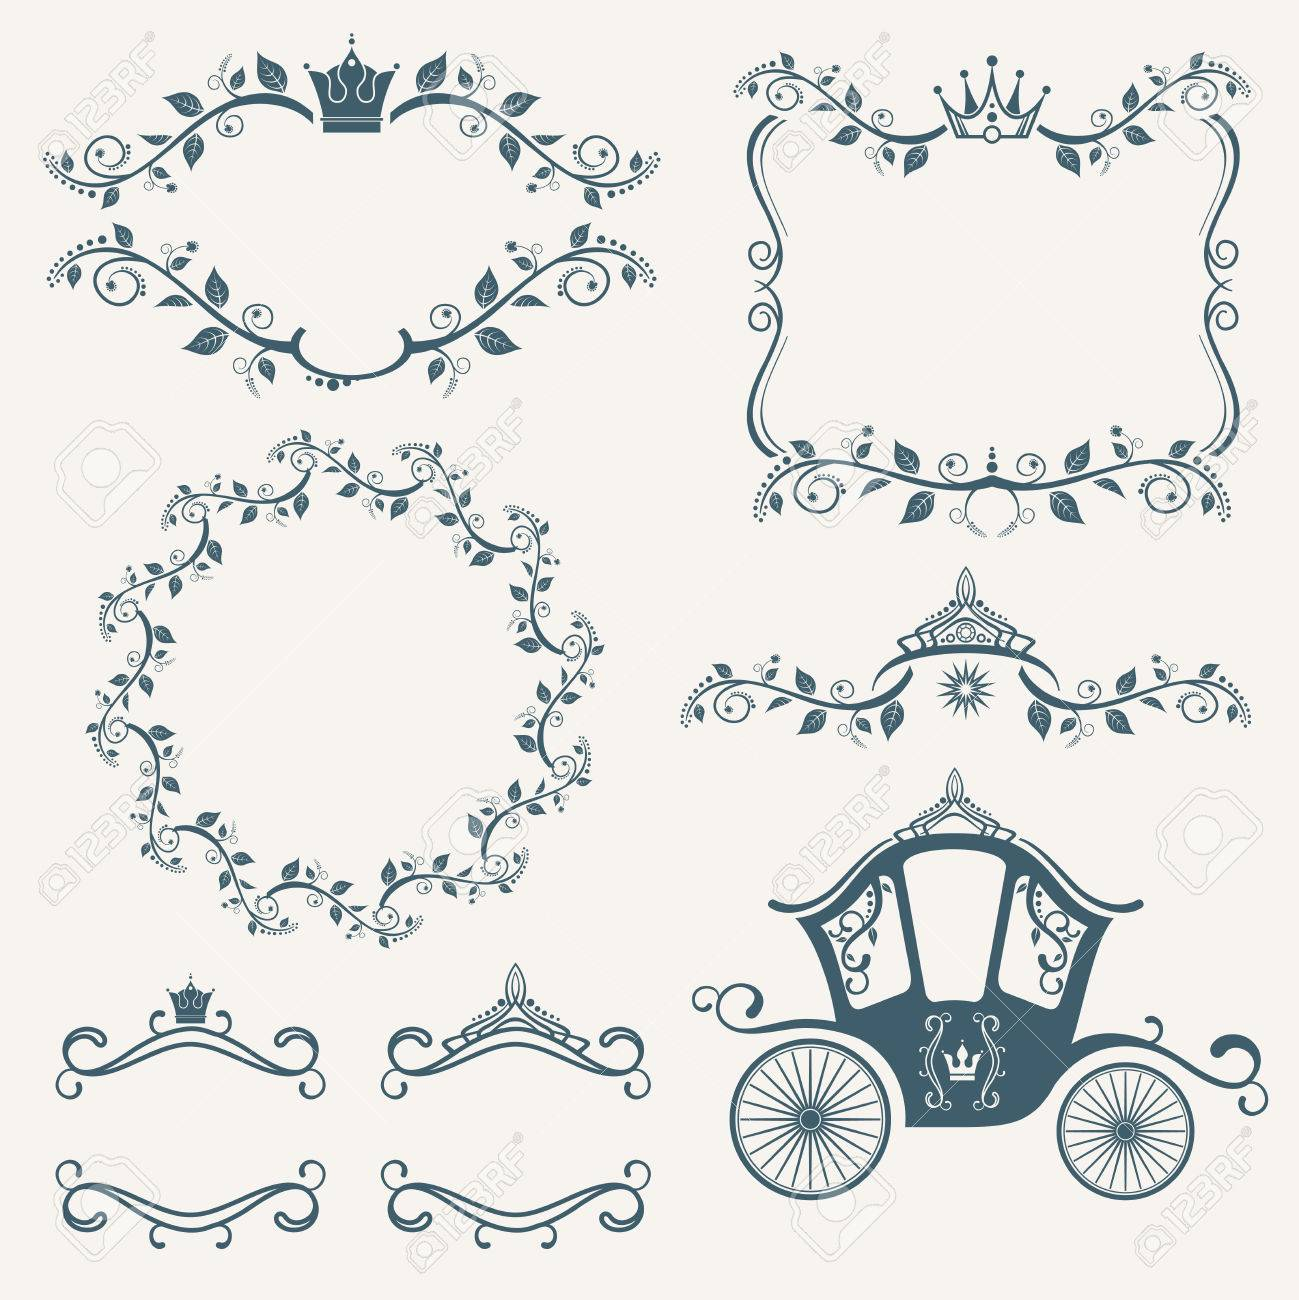 Vintage Royalty Frames With Crown, Diadems, Carriages Vector ...